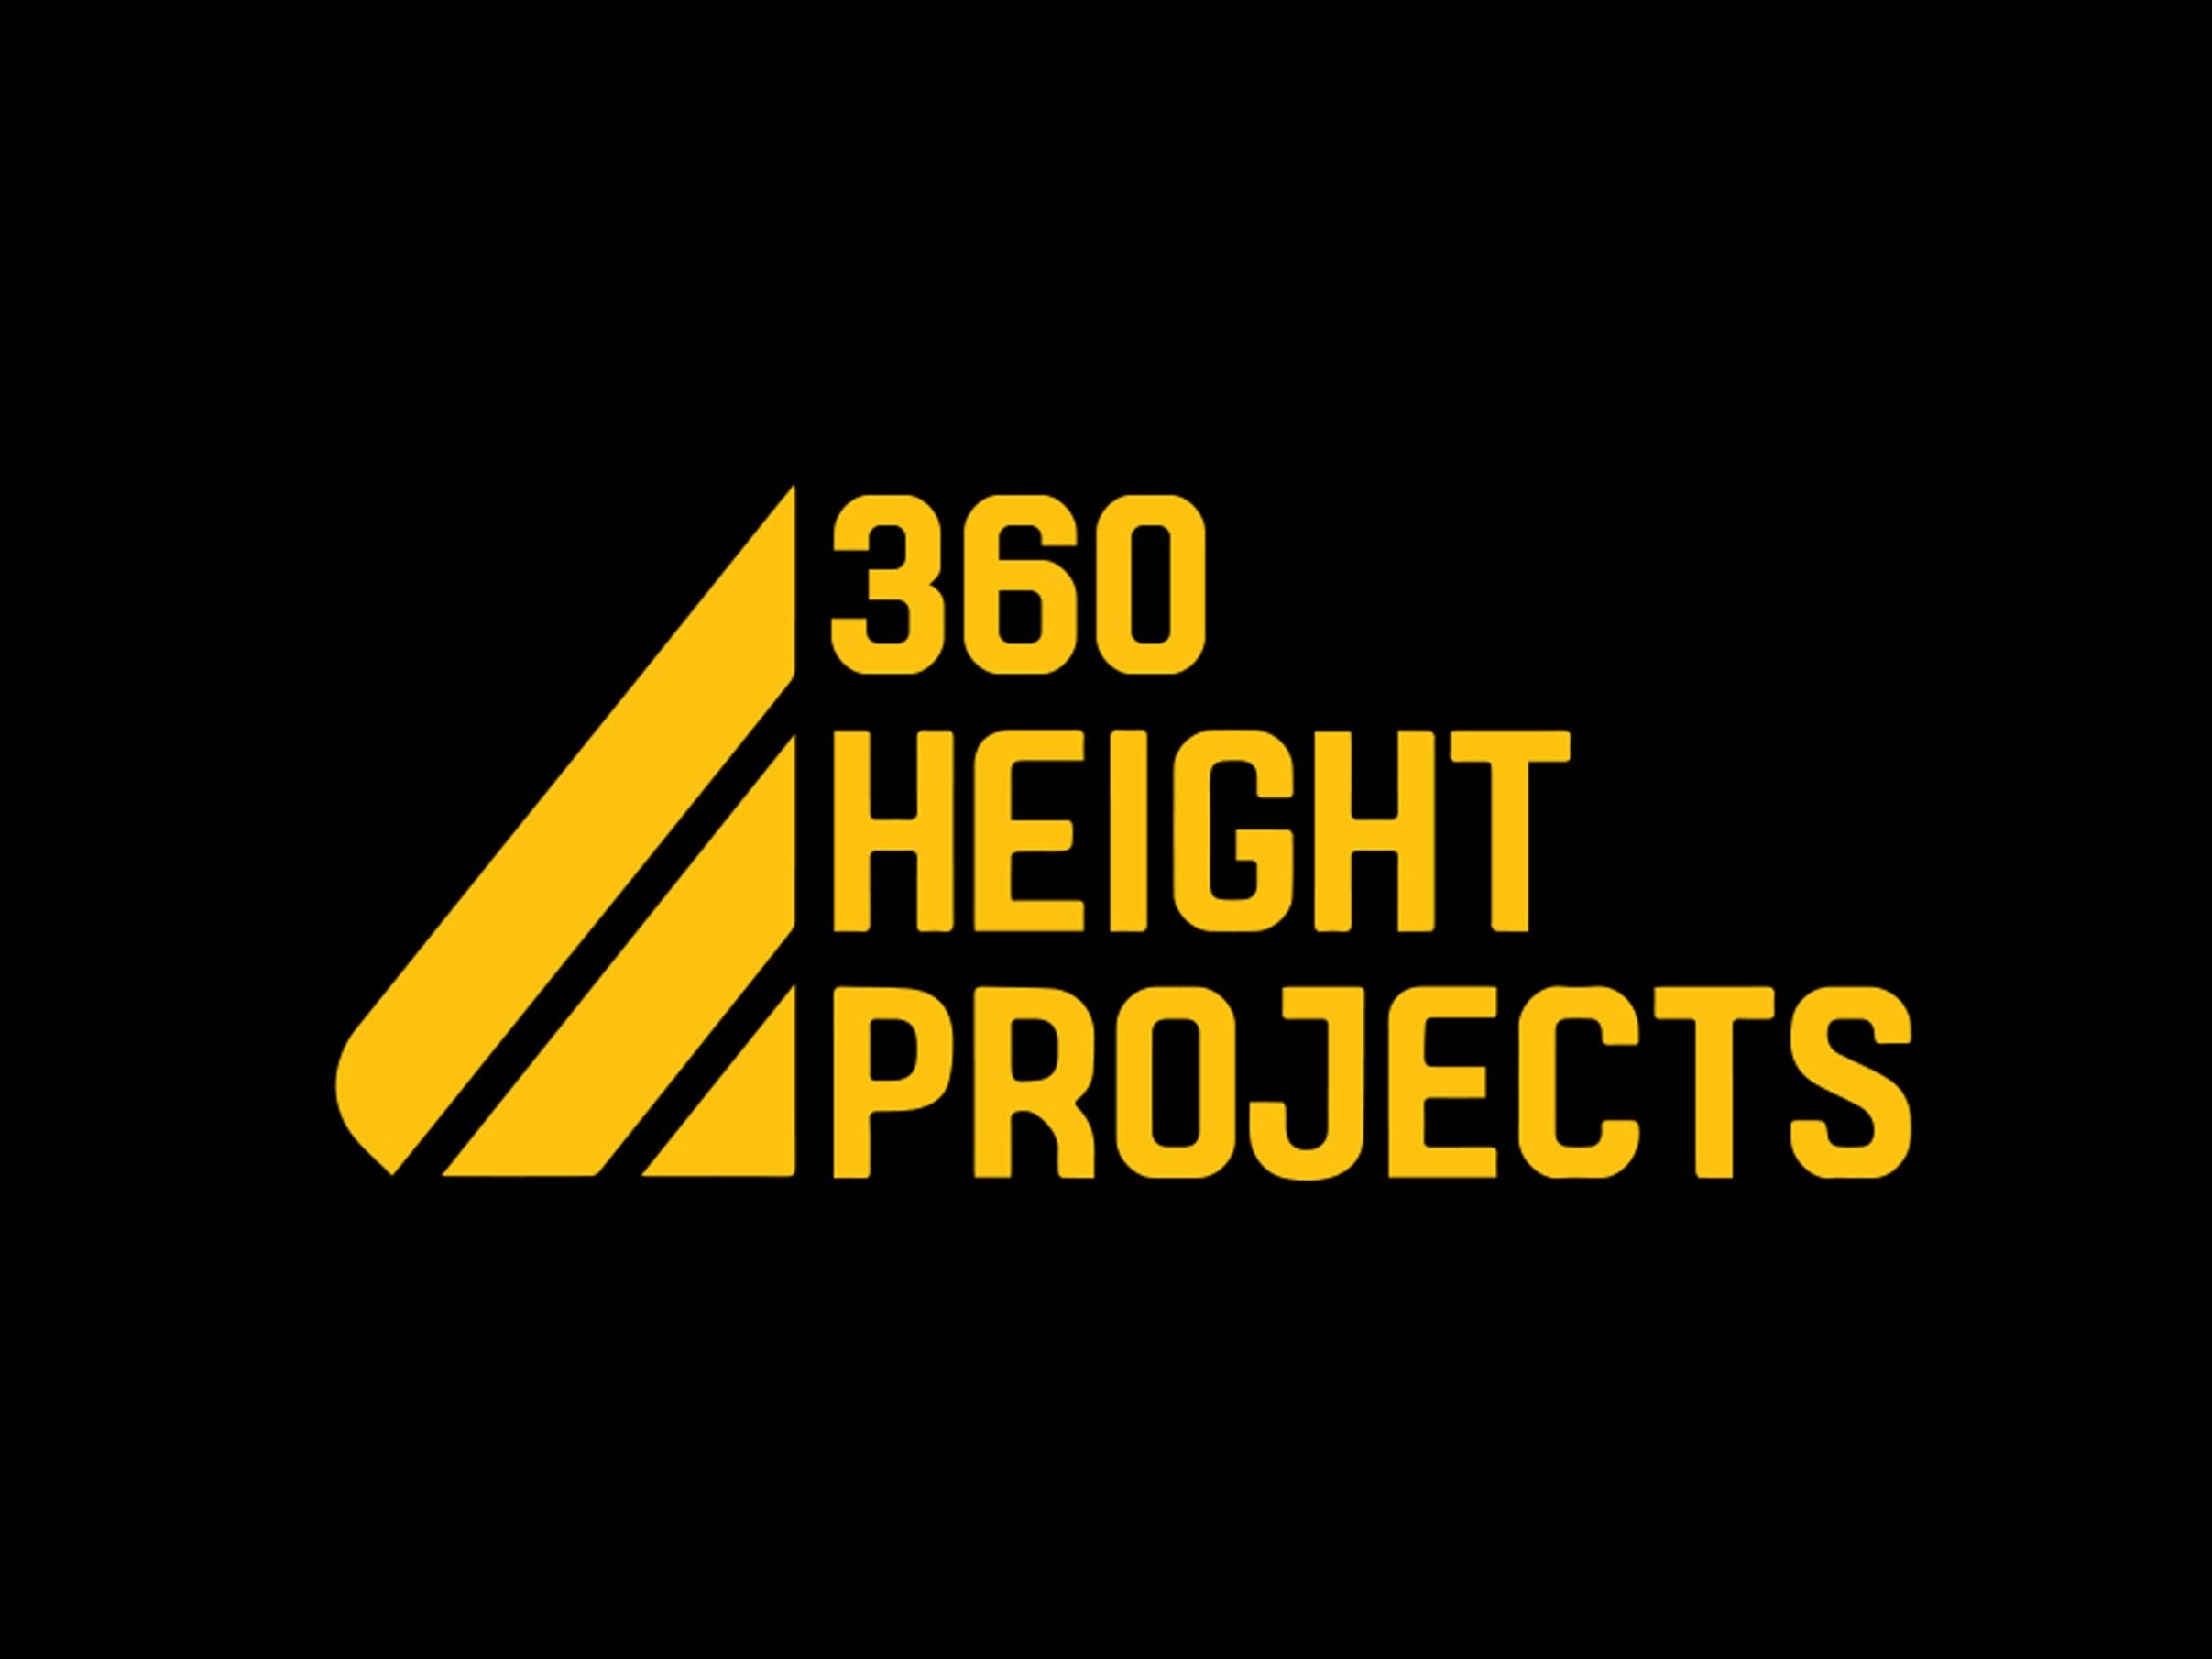 360 Height Projects